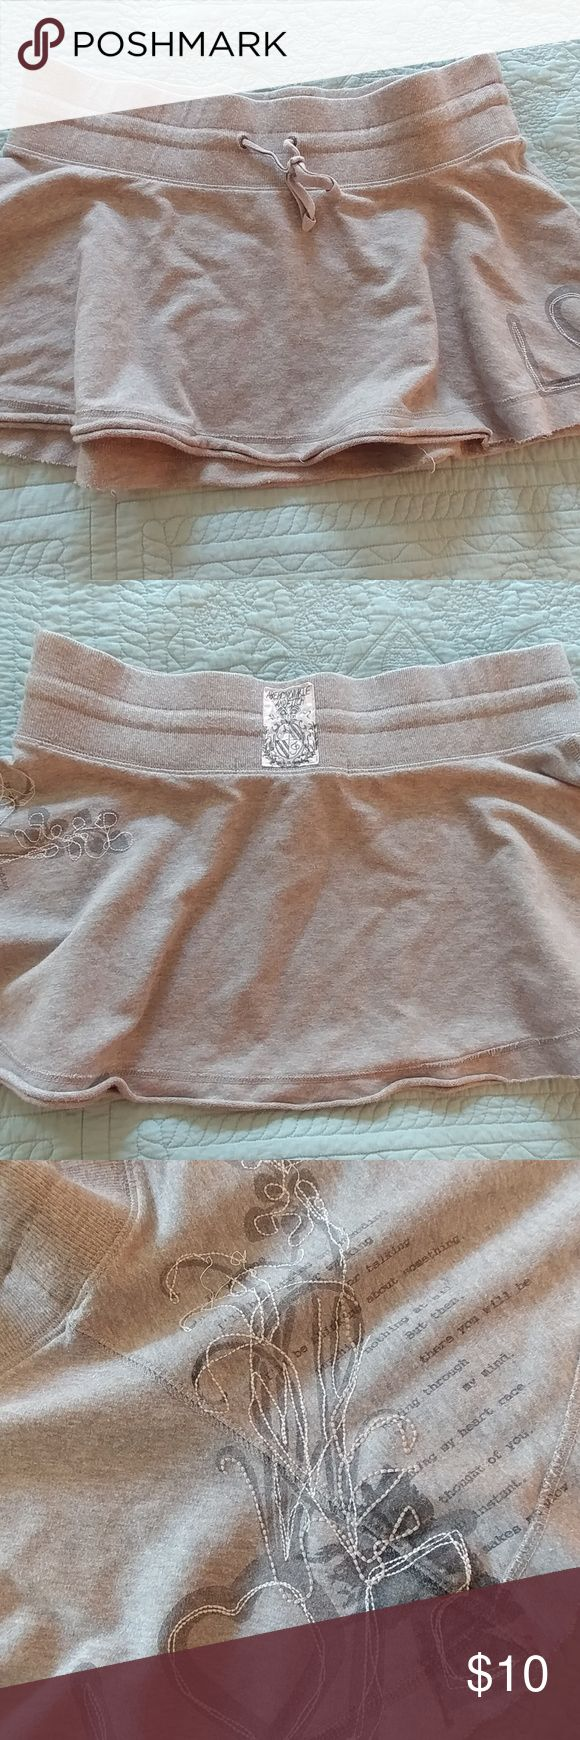 Abercrombie and Fitch skirt Abercrombie and Fitch skirt. Draw string waist, gray, size large. Used and in good condition Abercrombie & Fitch Skirts Mini